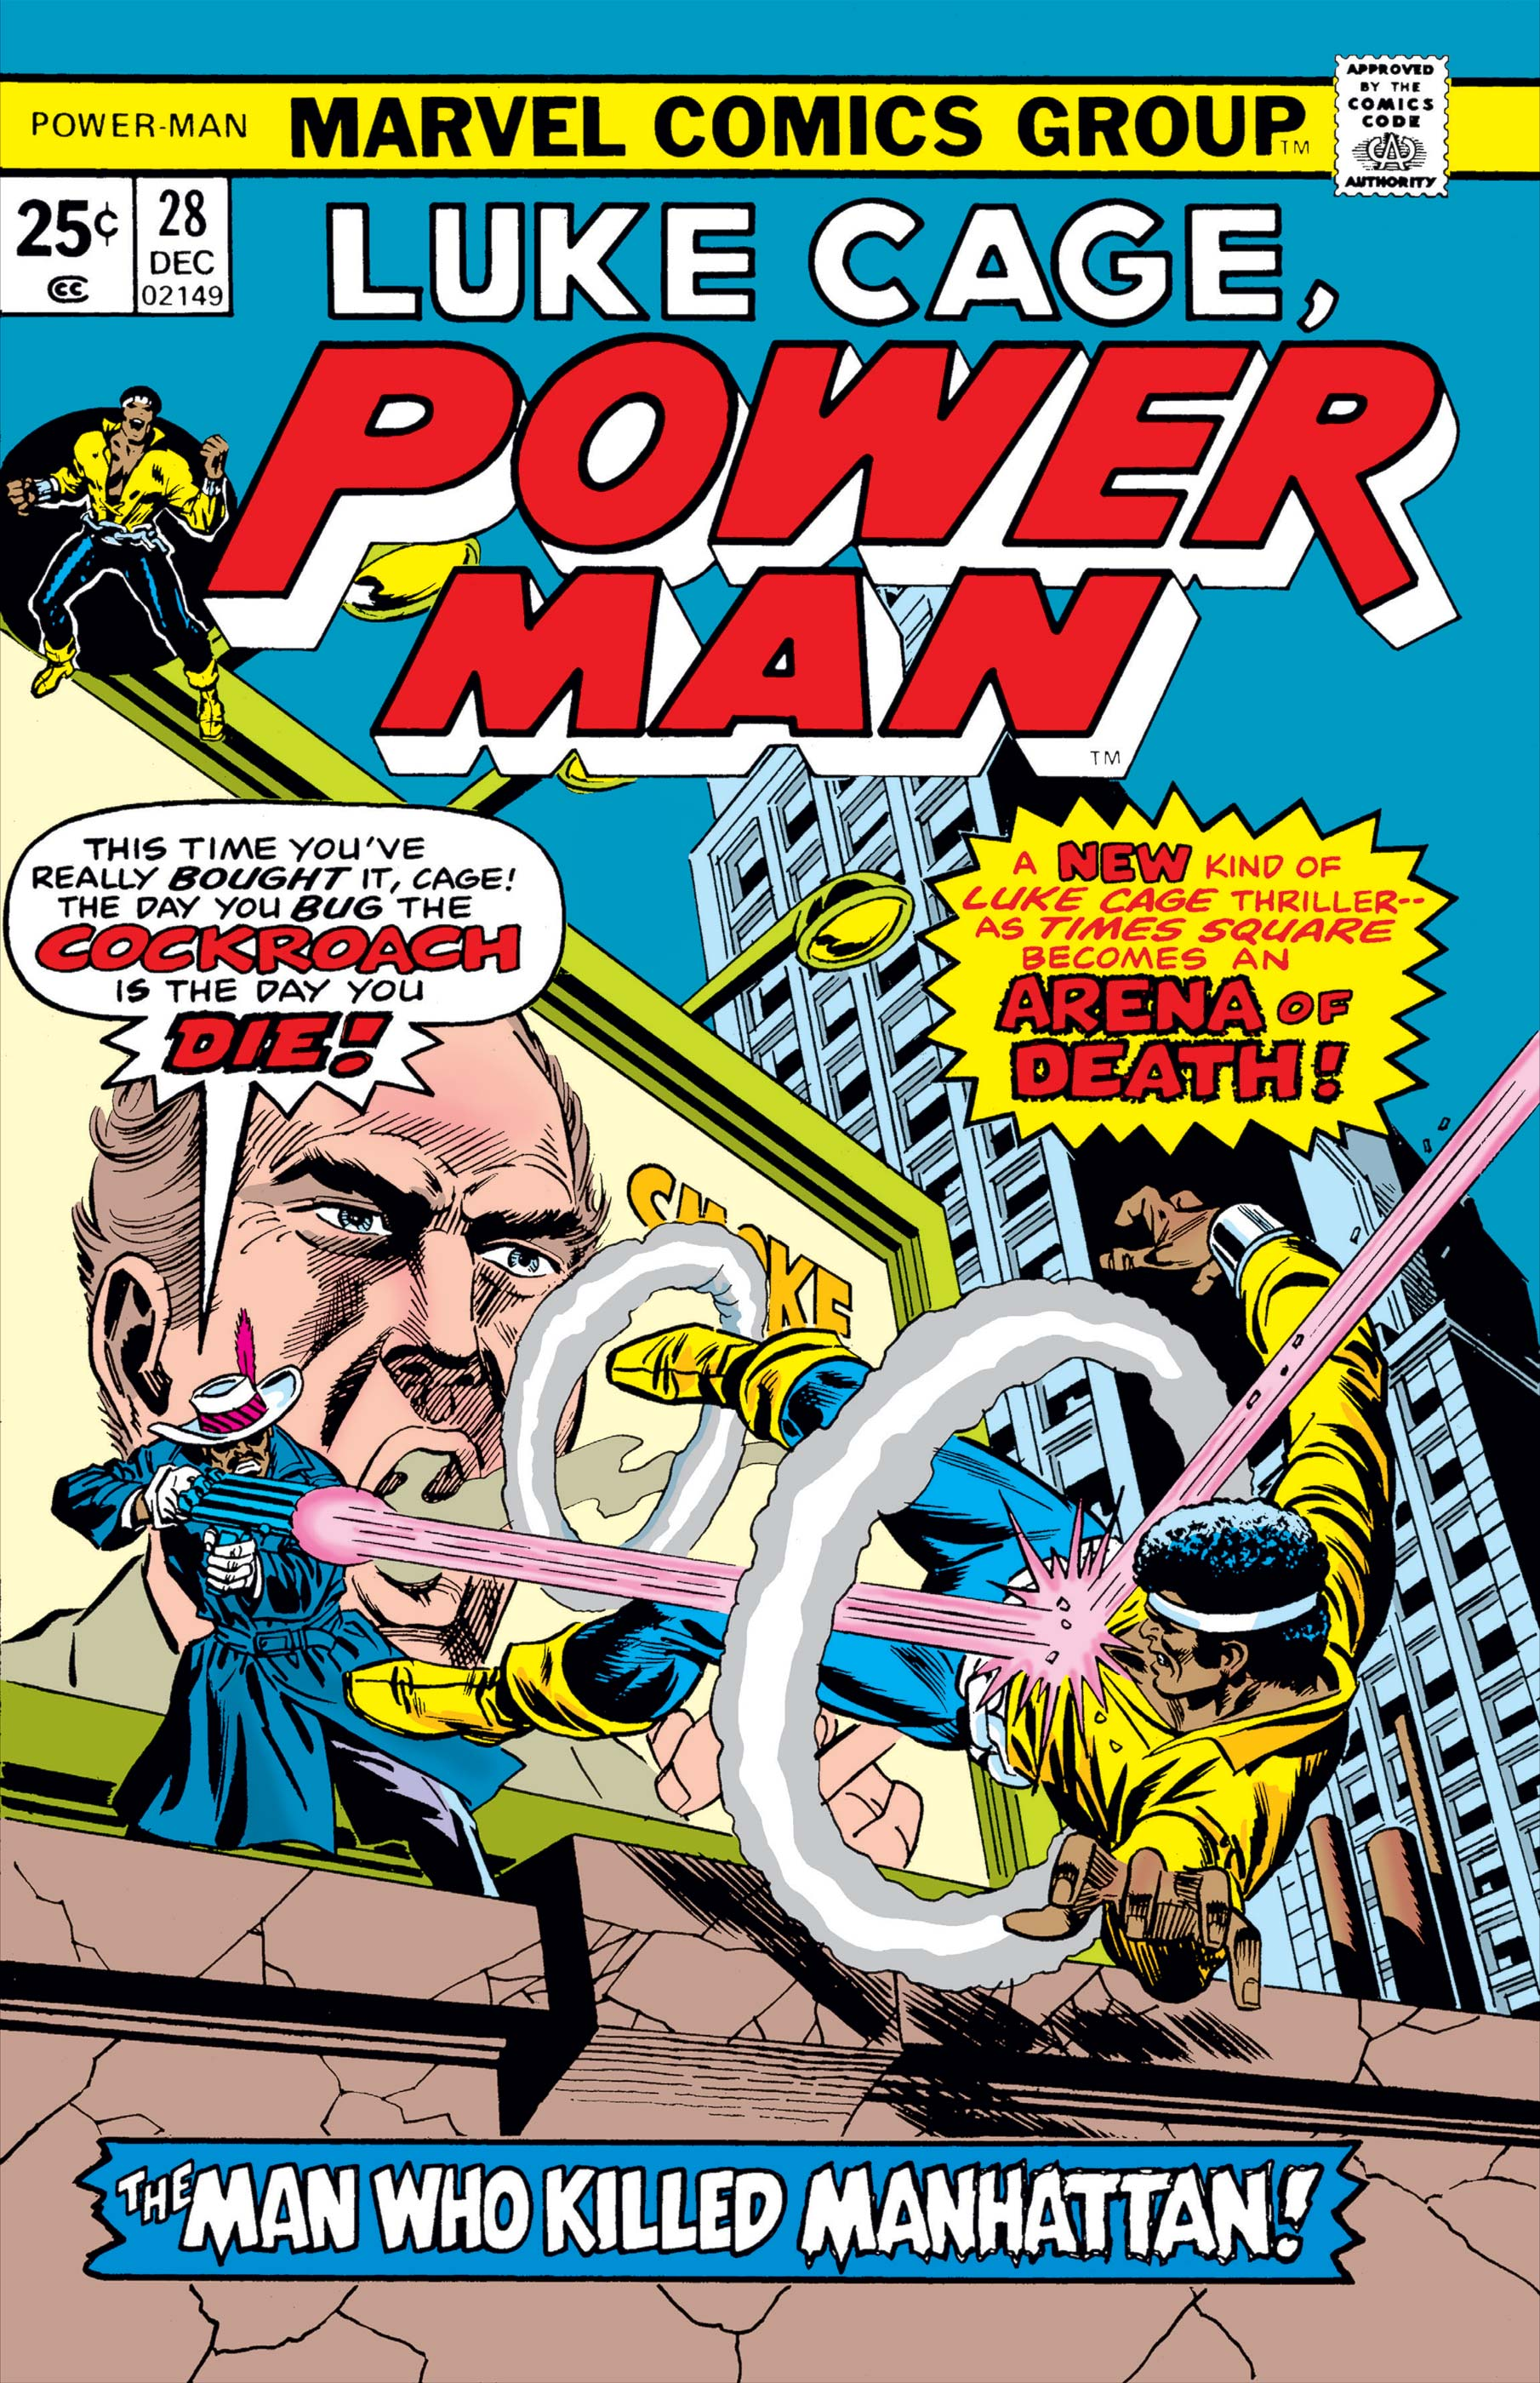 Power Man (1974) #28